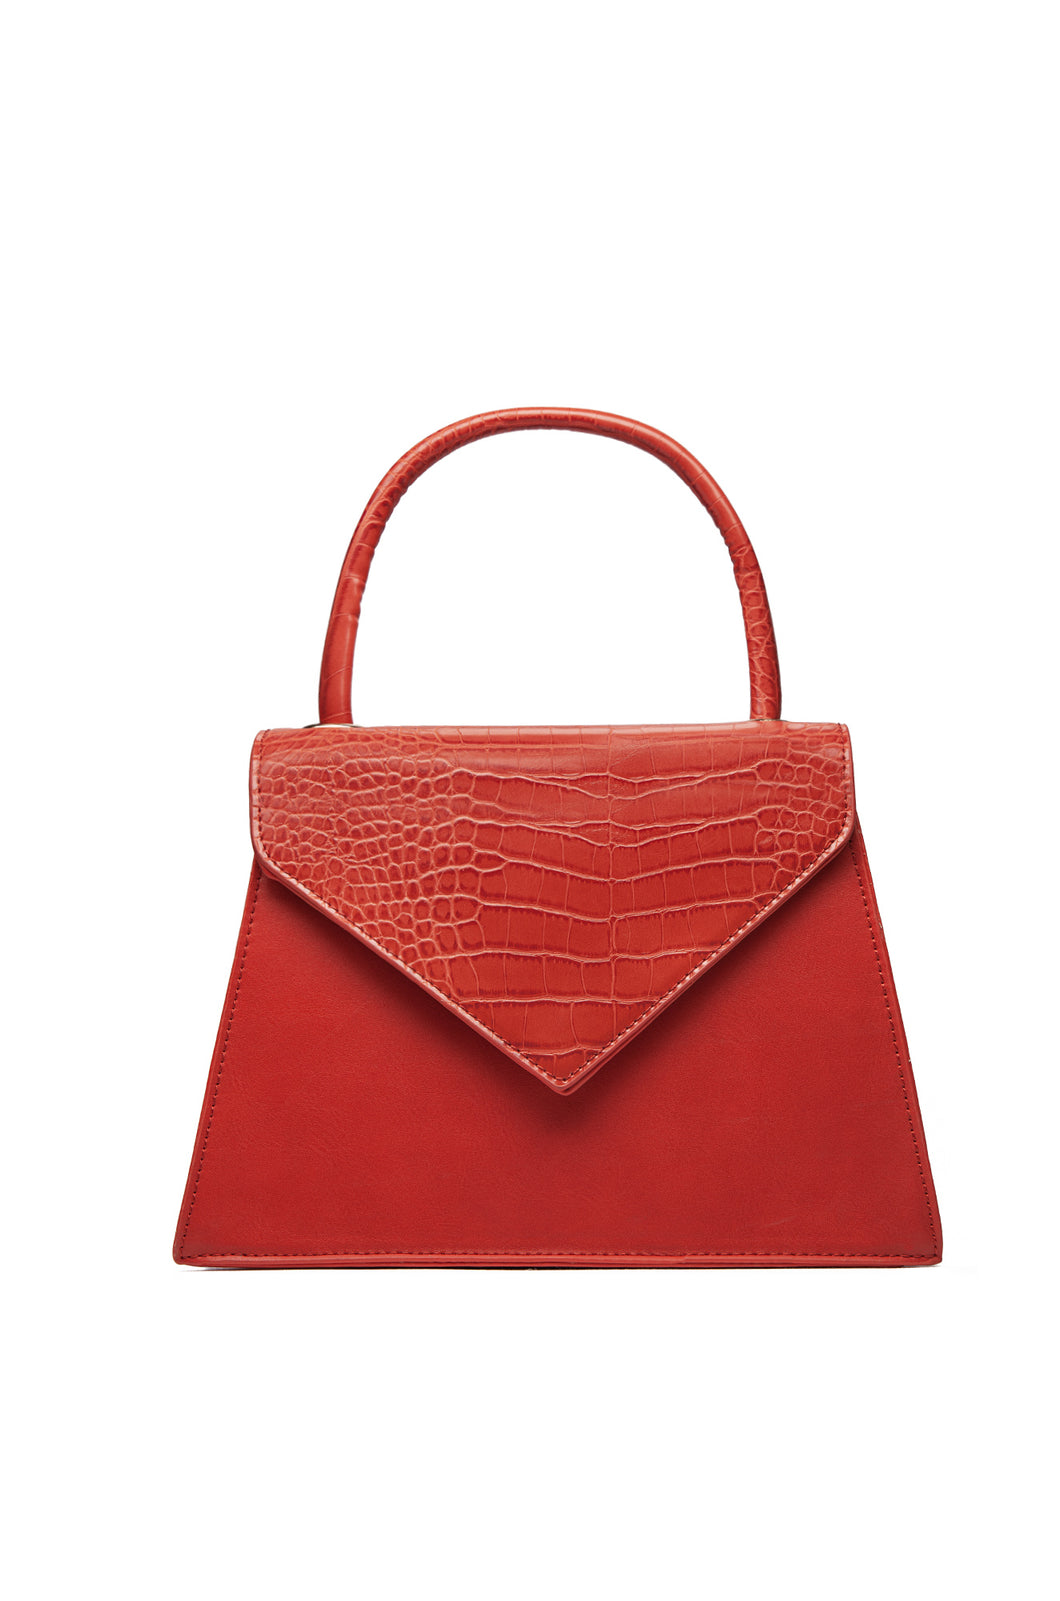 SHE.E.O Crossbody Bag - Red